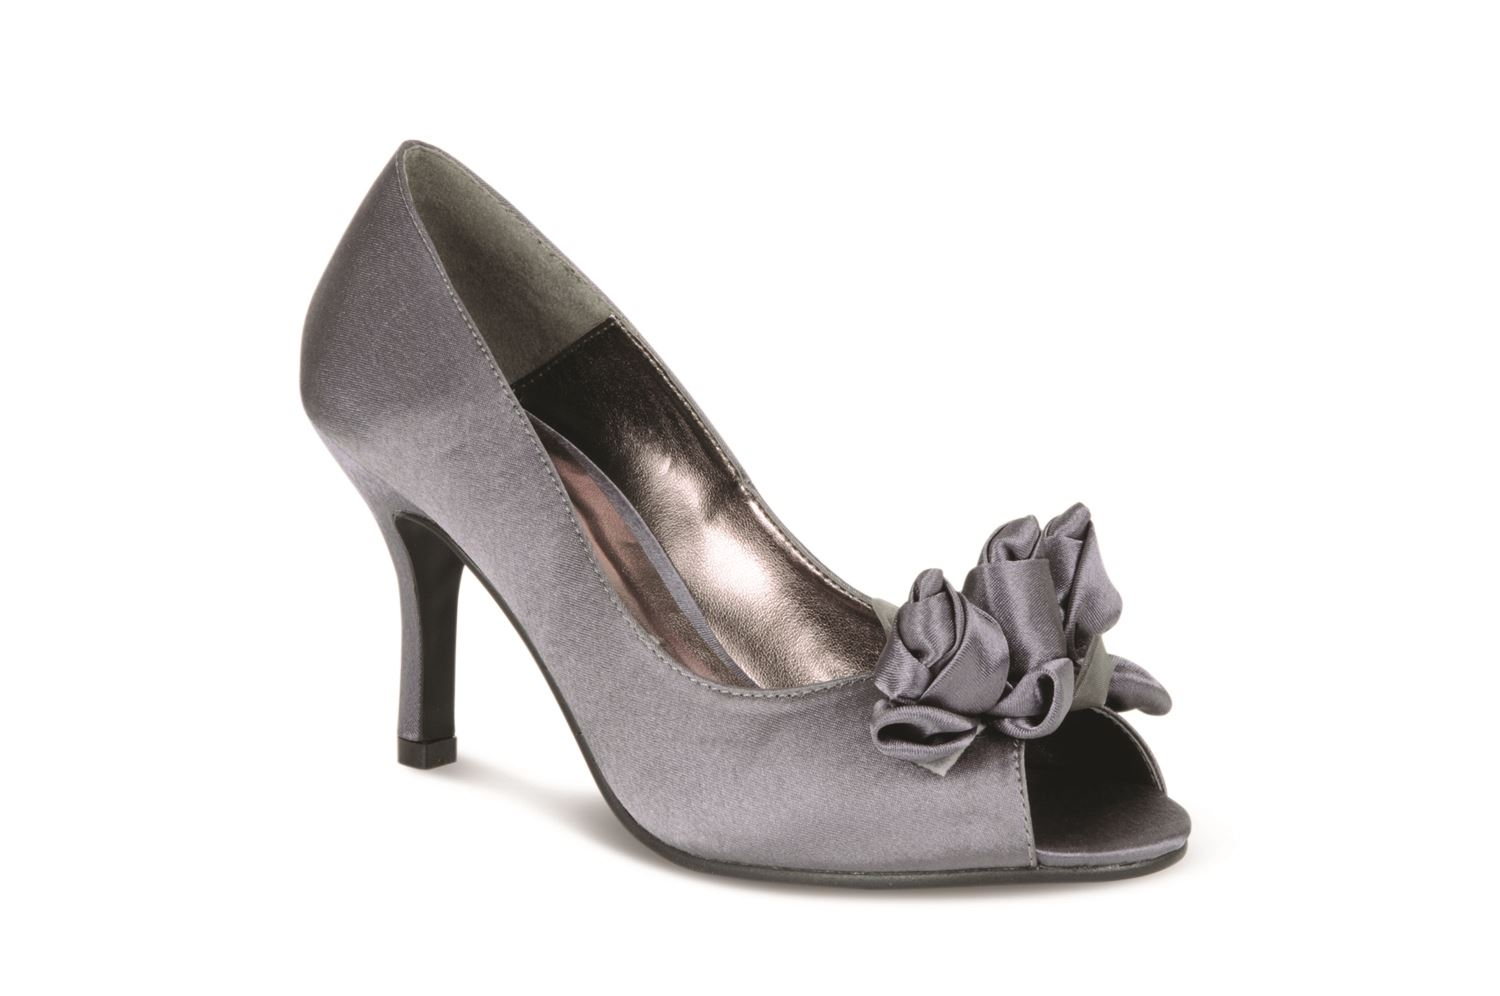 Women's Heels: High Heels & Pumps Shoes A woman can never have too many high heels. Choose from a wide selection of colors, classic nude and black heels, outrageous red .